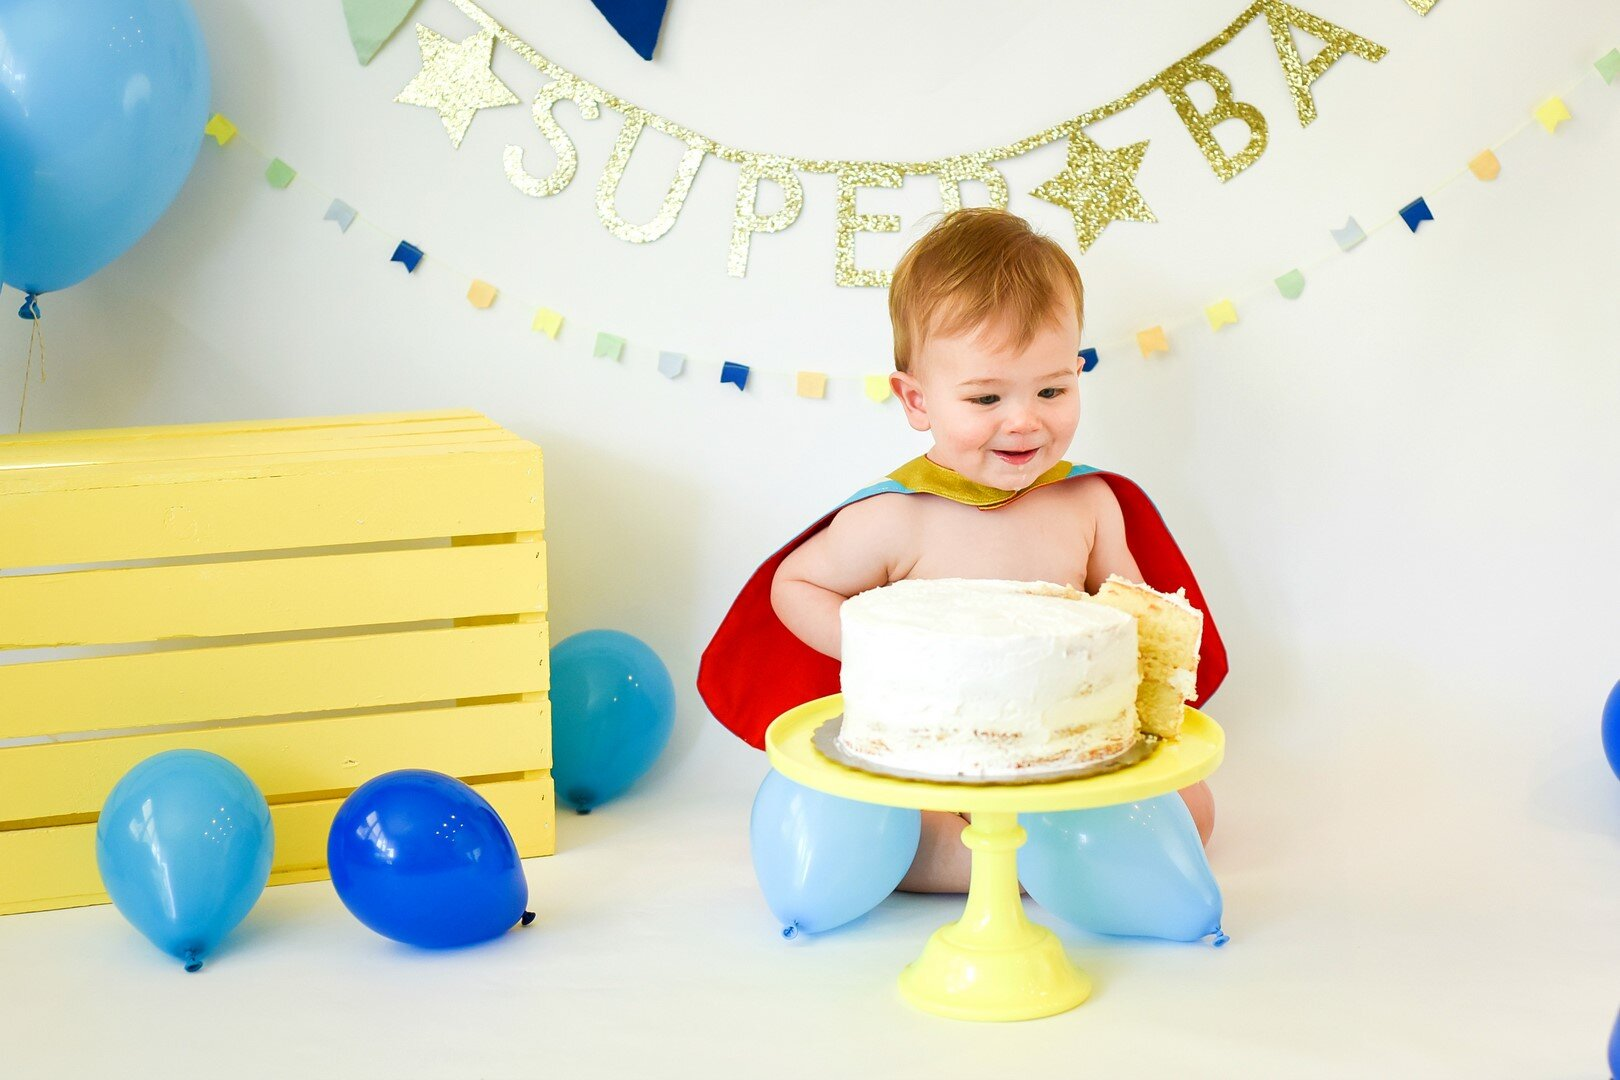 what-is-a-smash-cake-6.jpg